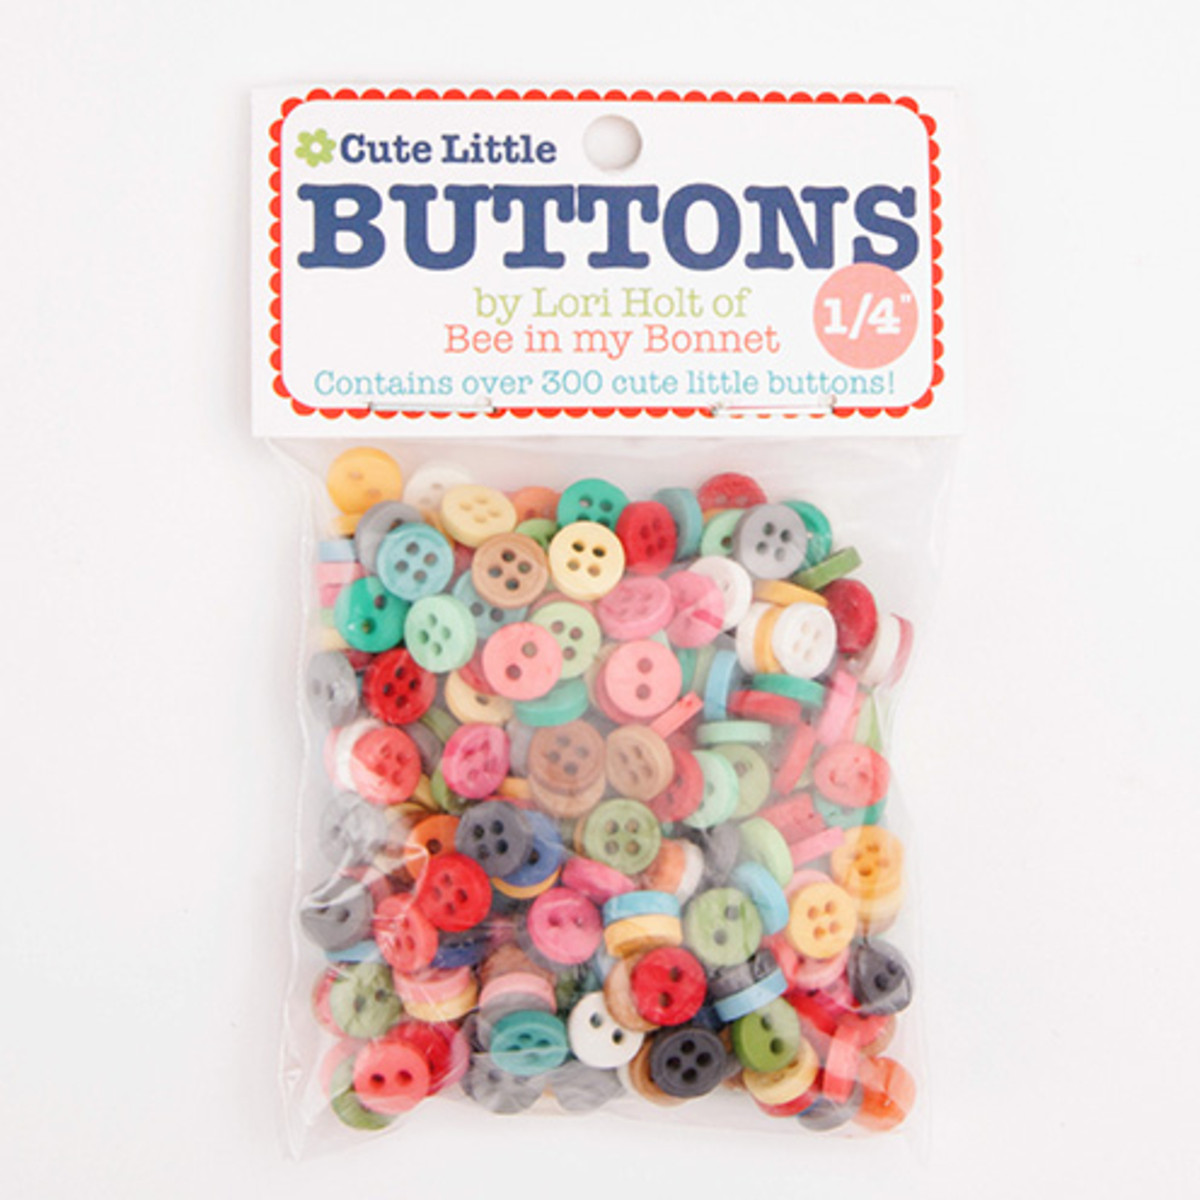 Cute Little Buttons By Lori Holt of Bee In My Bonnet • Stitches Quilting